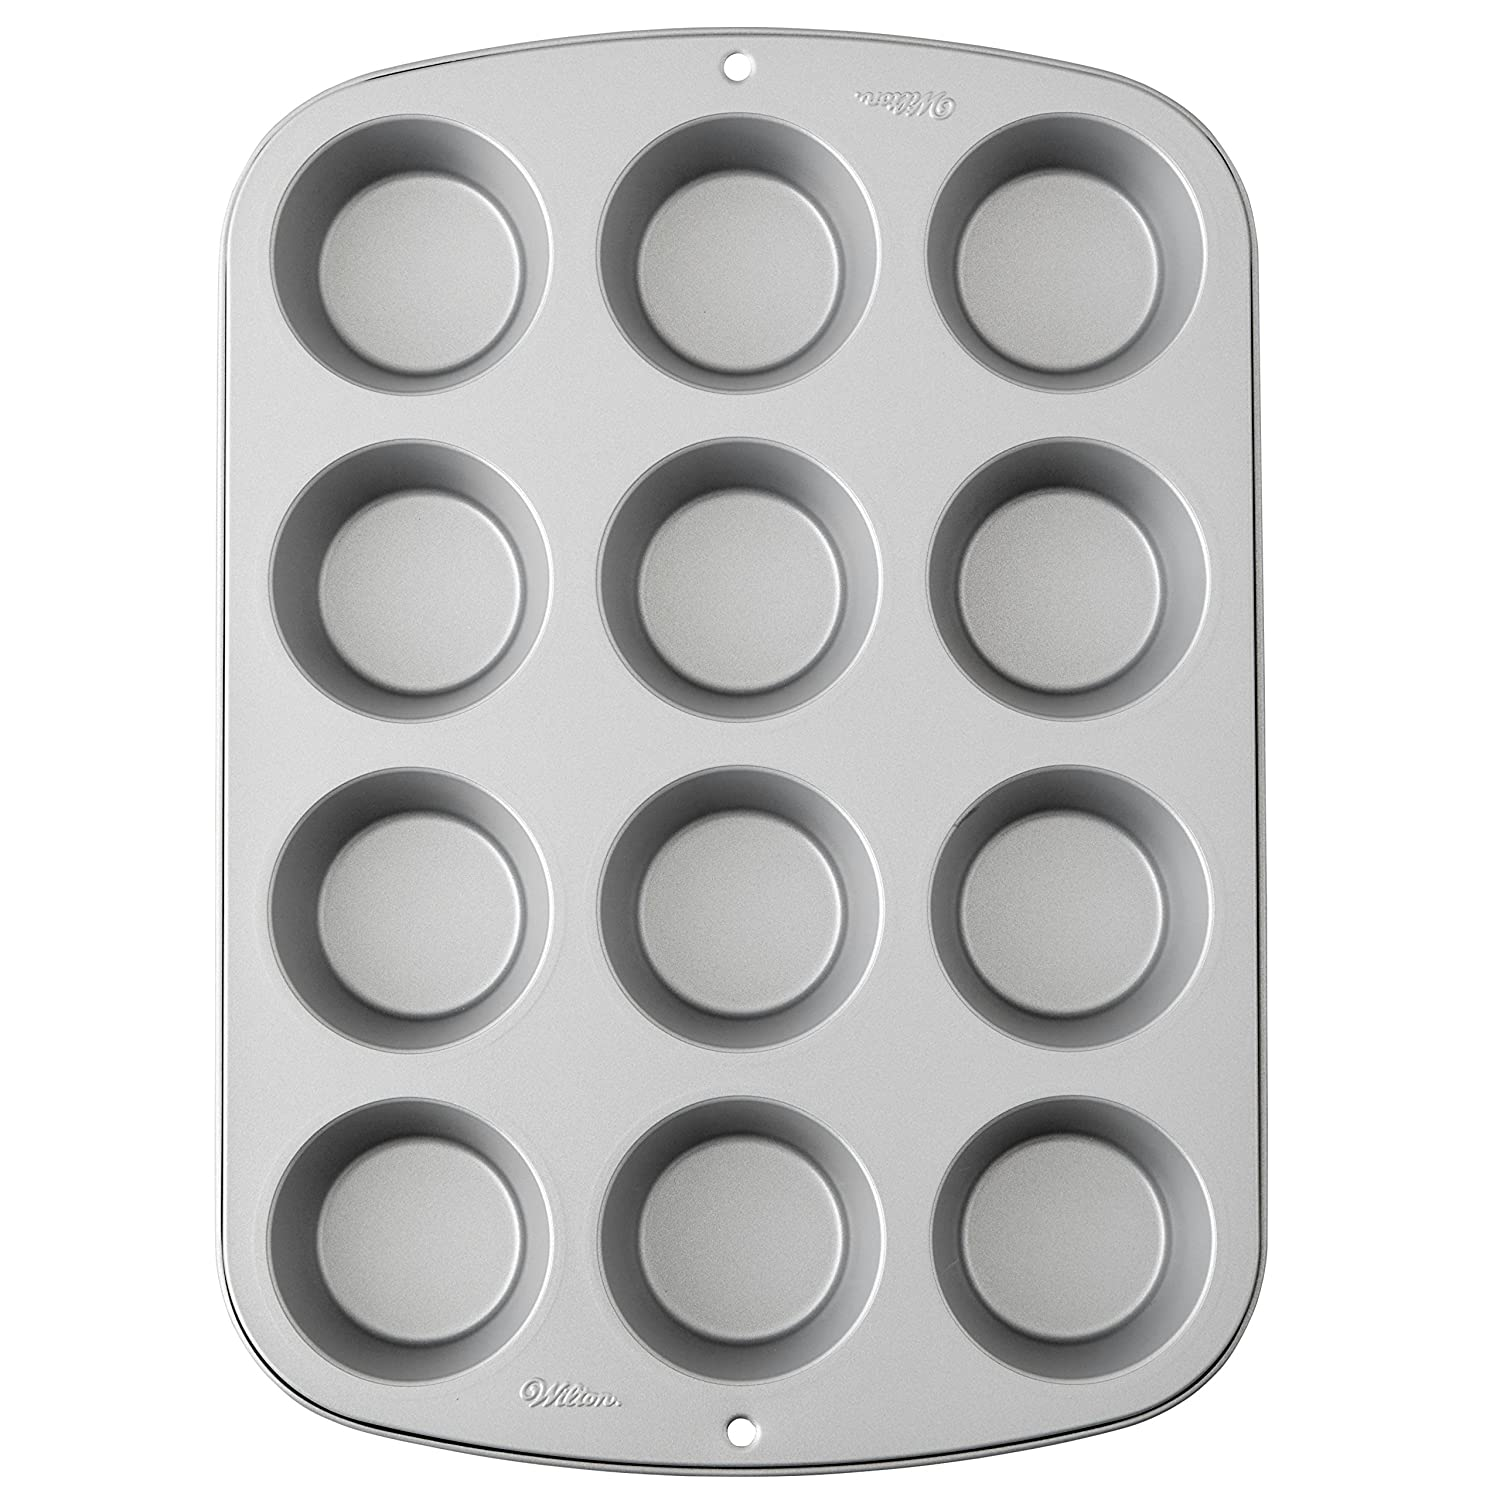 Wilton Recipe Right Nonstick 6-Cup Regular Muffin Pan 2105-953